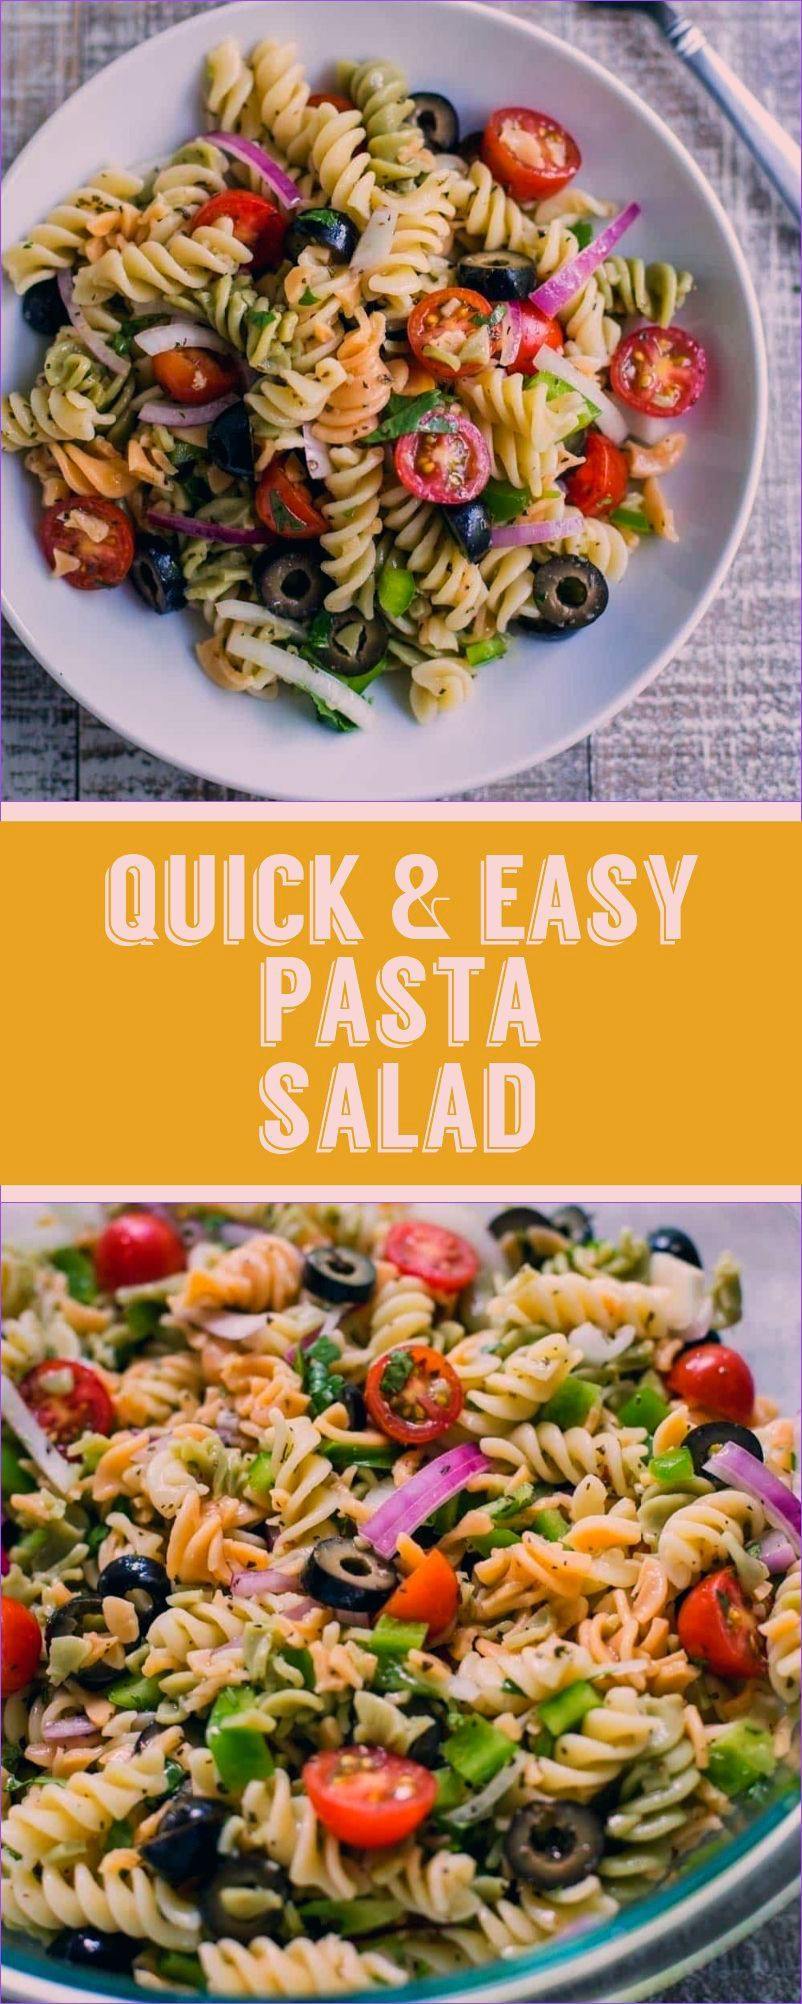 Quick & Easy VEGAN Pasta Salad- this recipes comes together in just about 10 minutes and is PERFECT for lazy summer meals that are healthy and still delicious! Substitute the noodles for brown rice noodles to make it gluten free! #vegan #plantbased #pasta #healthy